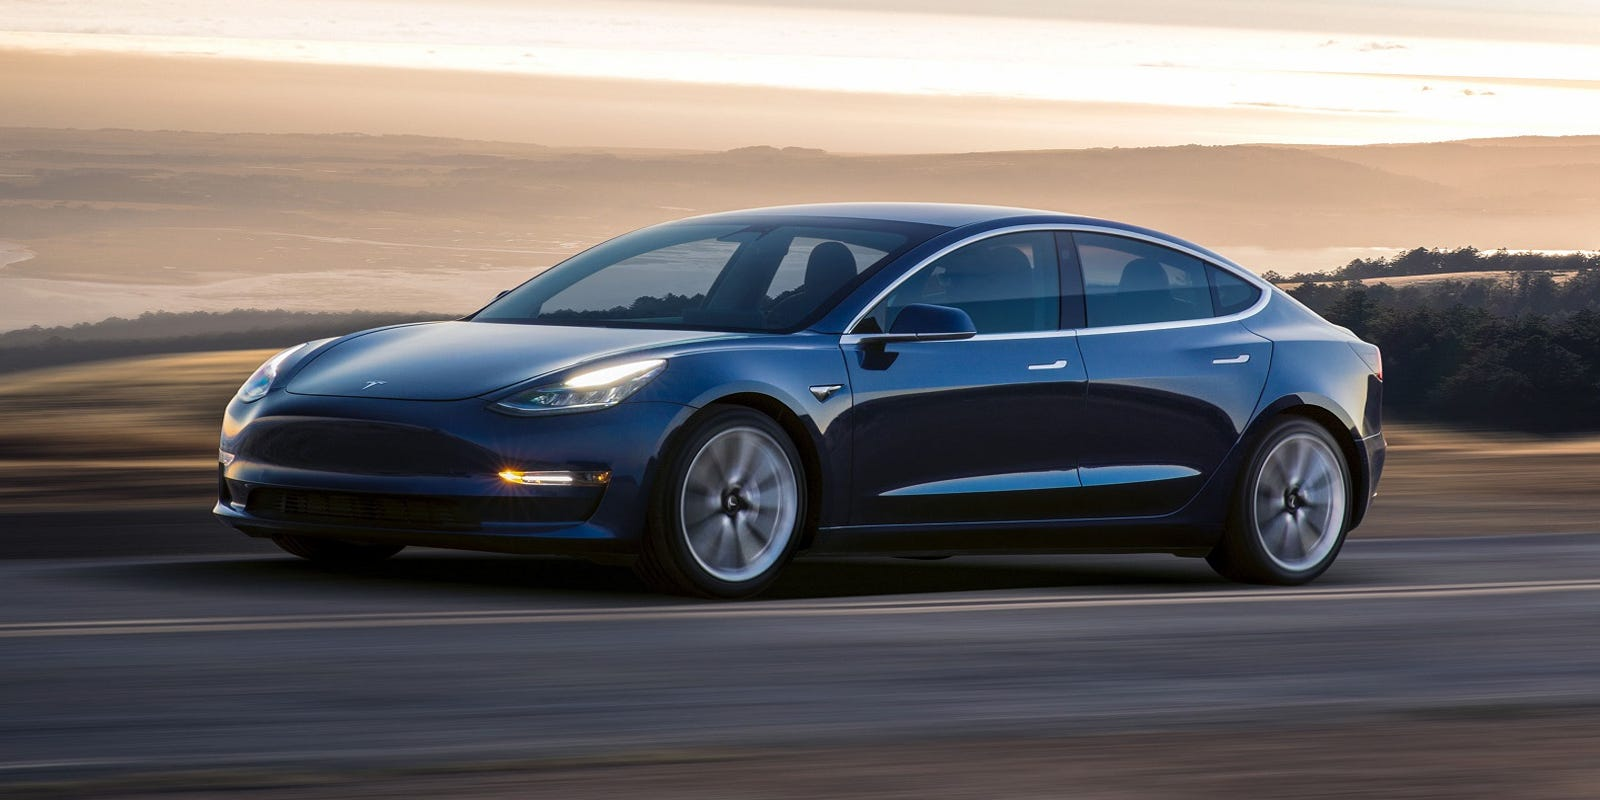 Tesla Model 3 earns top safety honor from IIHS: It's 'a very safe car'